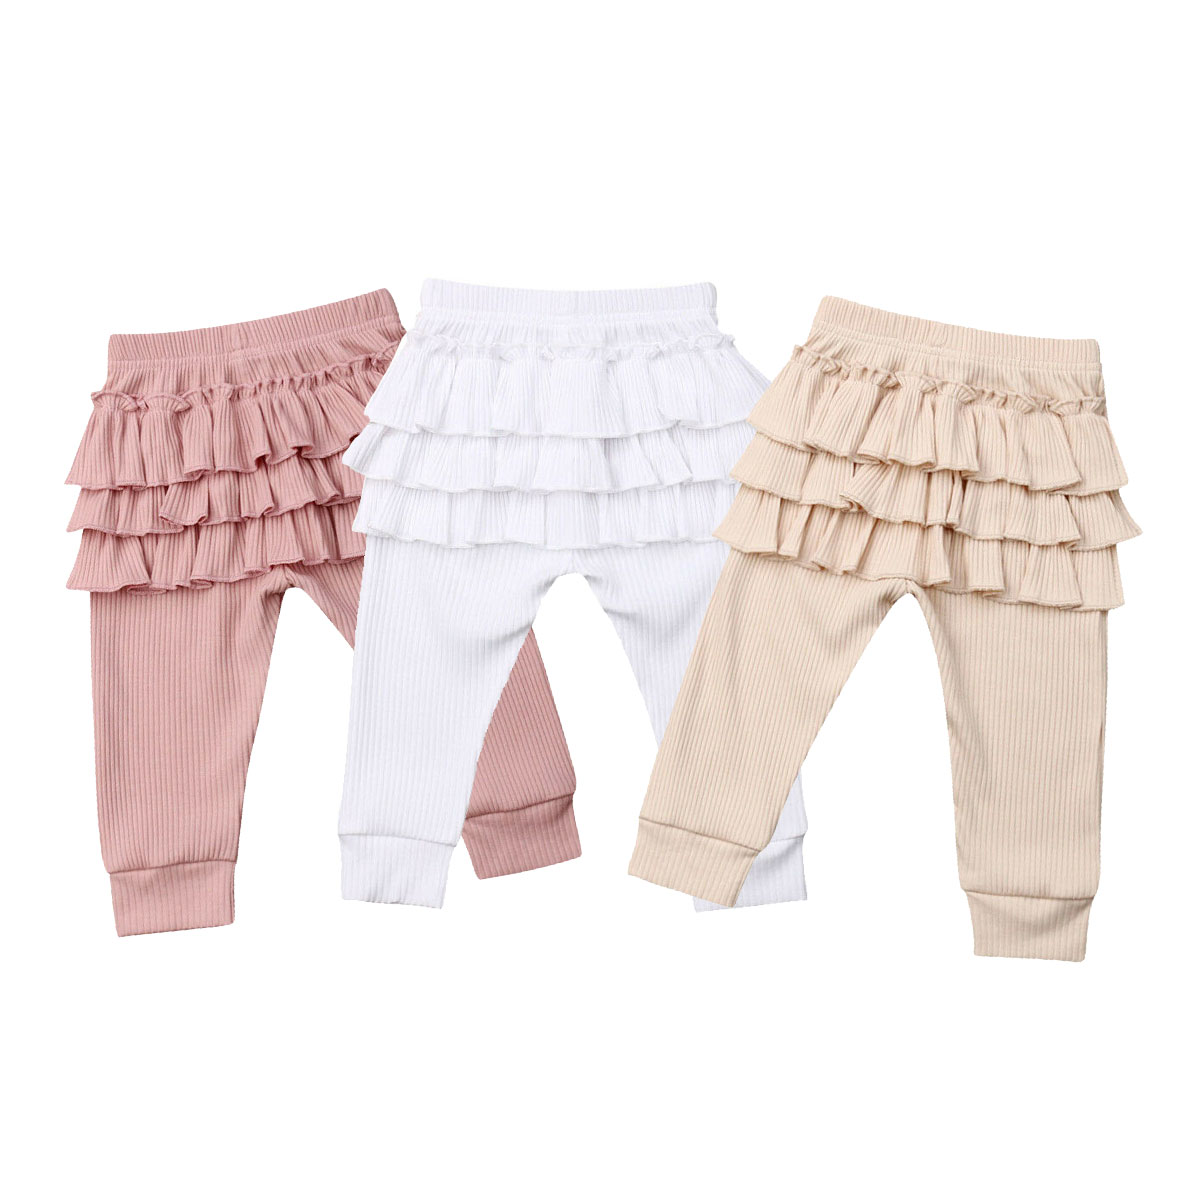 2019 New Autumn Sell Newborn Kids Baby Girl Solid Ruffle Leggings Bottoms Long Pants Trousers